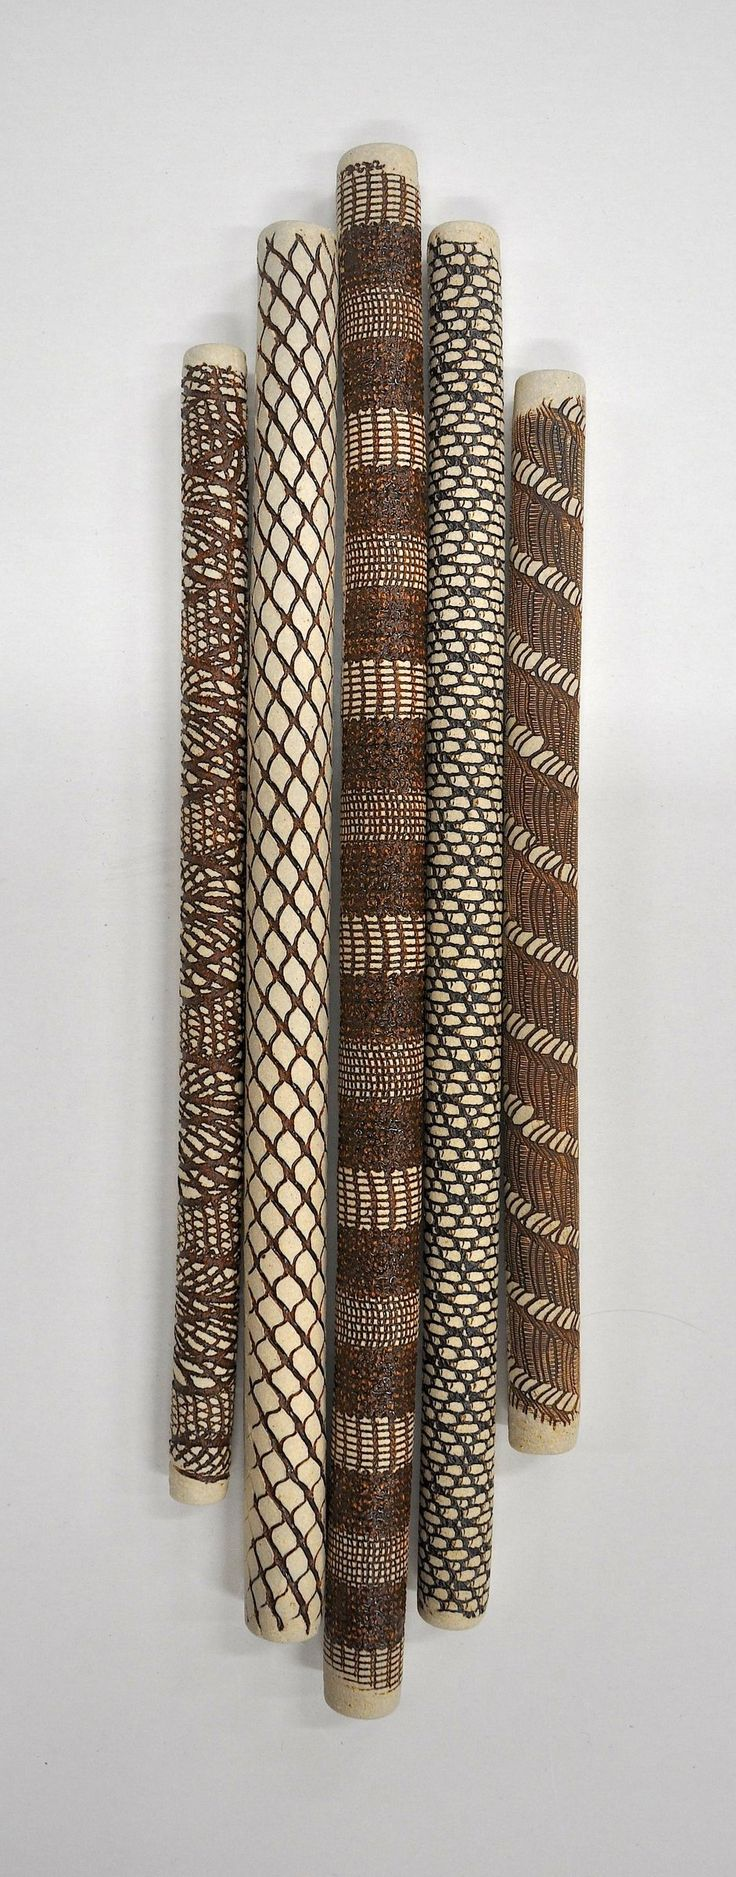 Five Wall Pieces - Light by Kelly Jean Ohl. Grouping of five individual ceramic wall sticks. Each individual piece is hand carved and hand painted. Detailed instructions are included to assist with installation. Please note that this item ships unassembled.